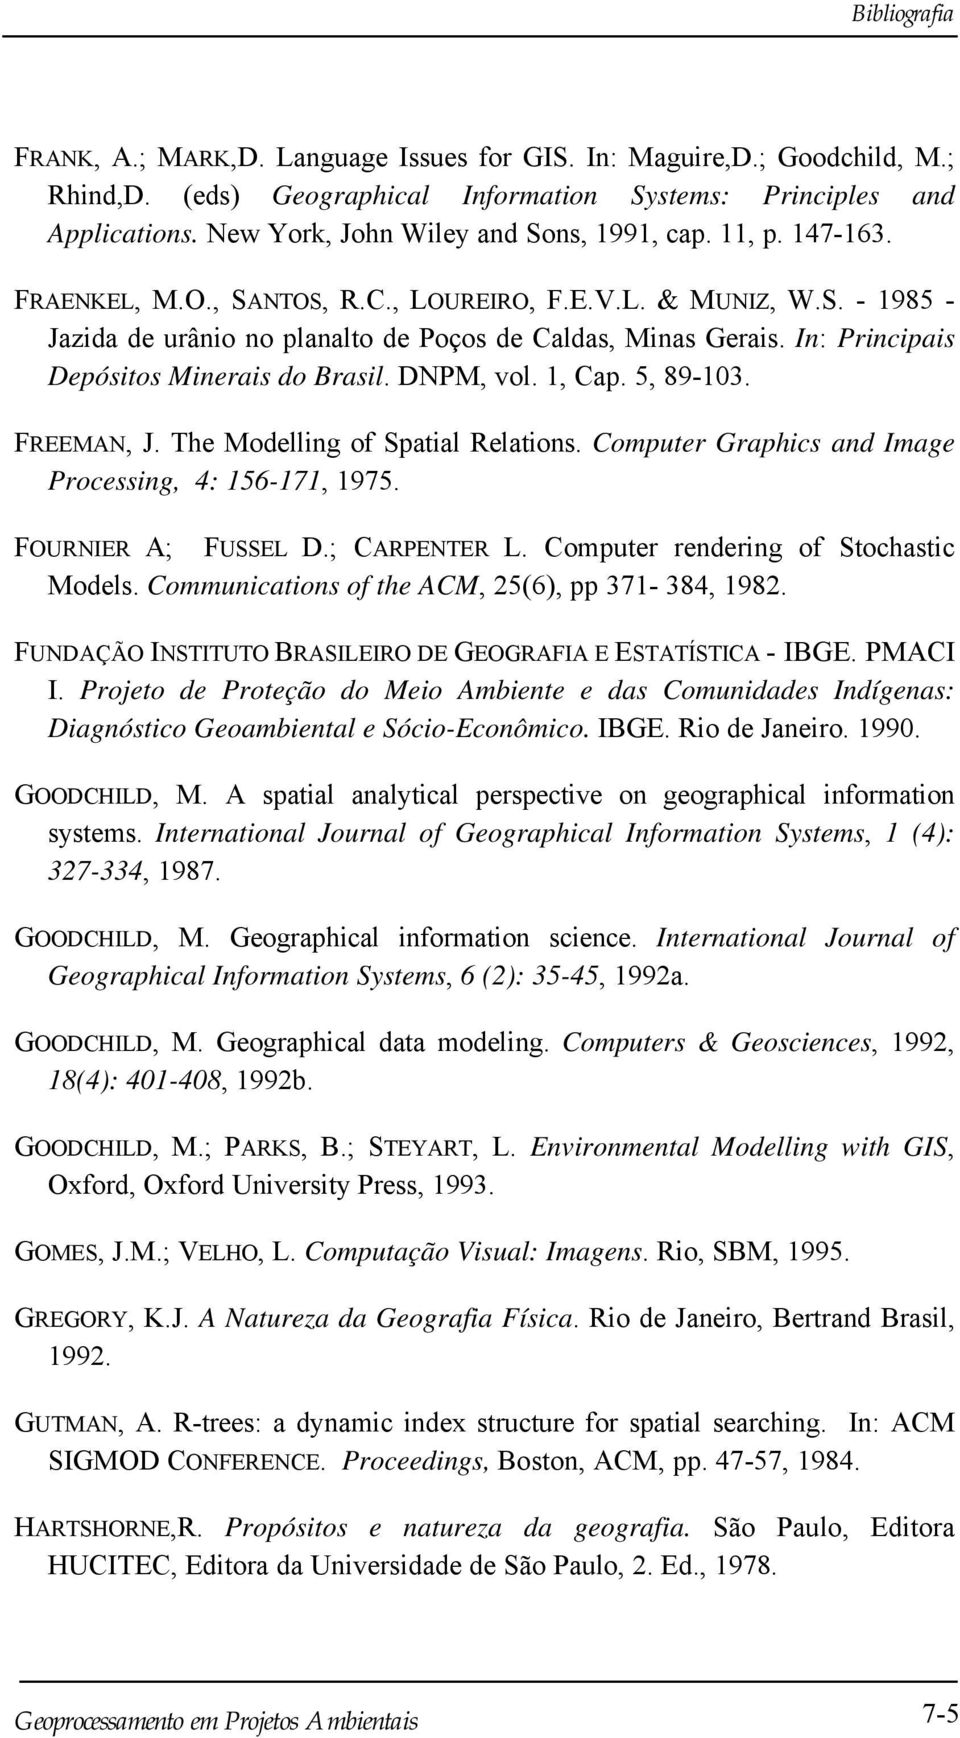 DNPM, vol. 1, Cap. 5, 89-103. FREEMAN, J. The Modelling of Spatial Relations. Computer Graphics and Image Processing, 4: 156-171, 1975. FOURNIER A; FUSSEL D.; CARPENTER L.